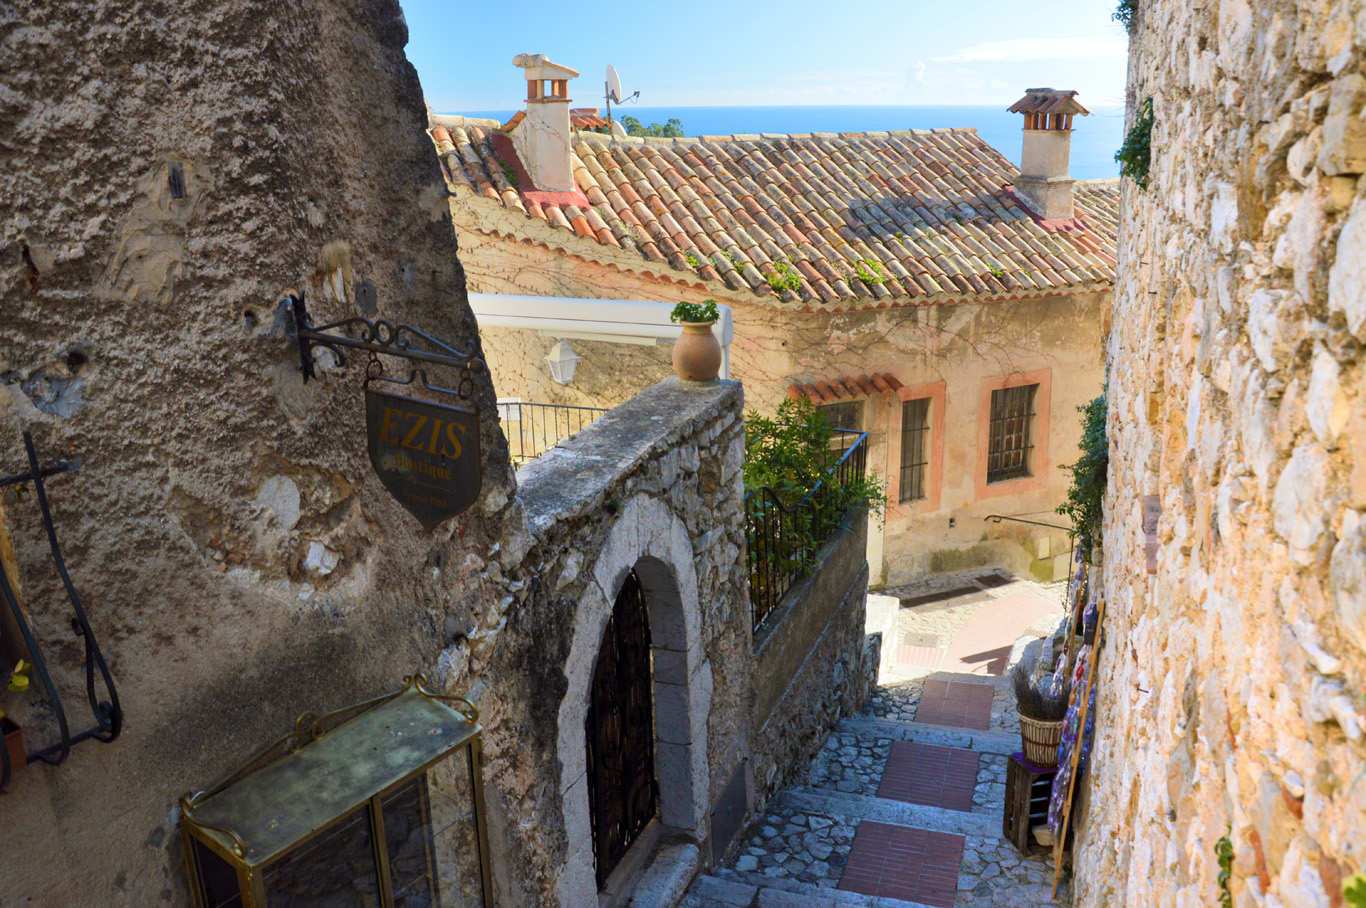 Eze Old Town